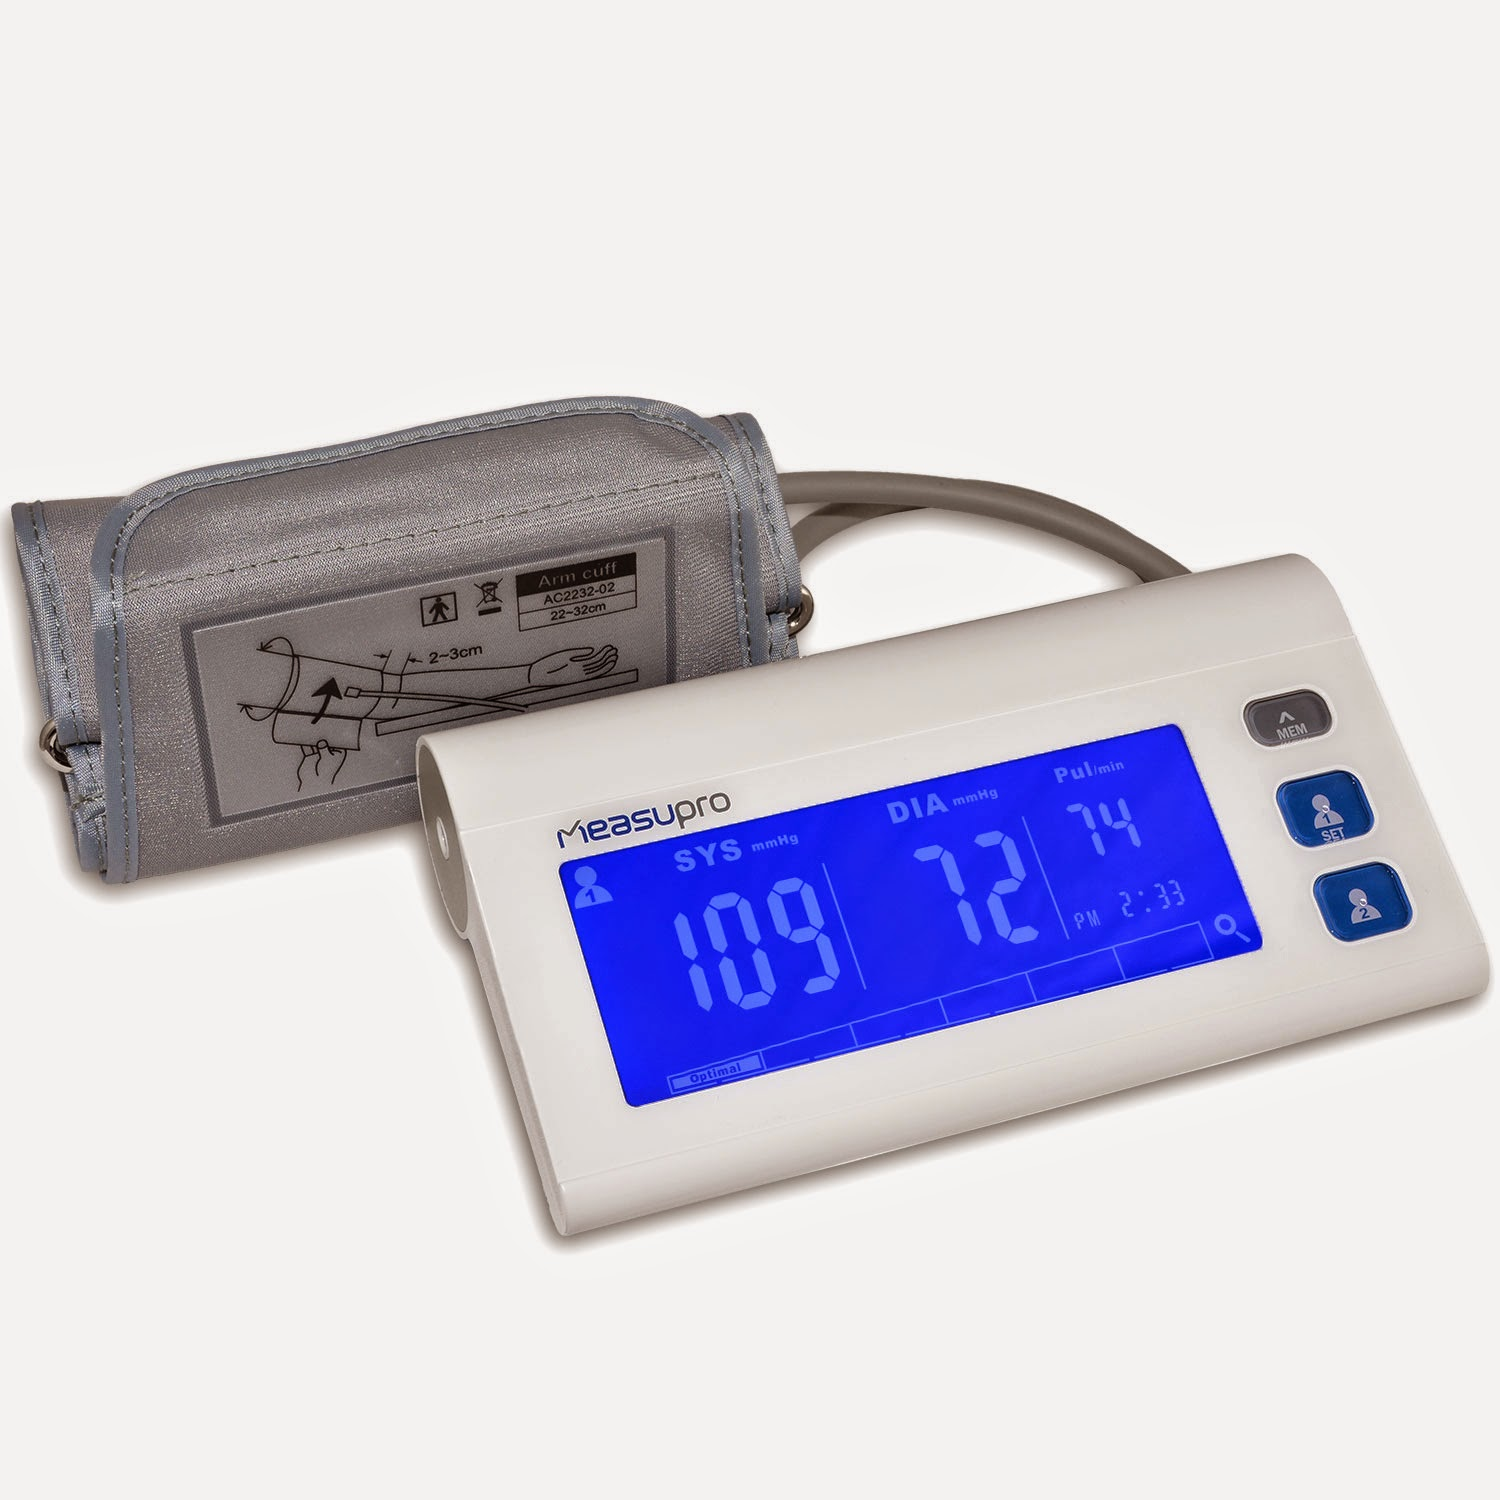 http://www.amazon.com/measupro-bpm-80a-pressure-detection-indicator/dp/b00tg2ixno/